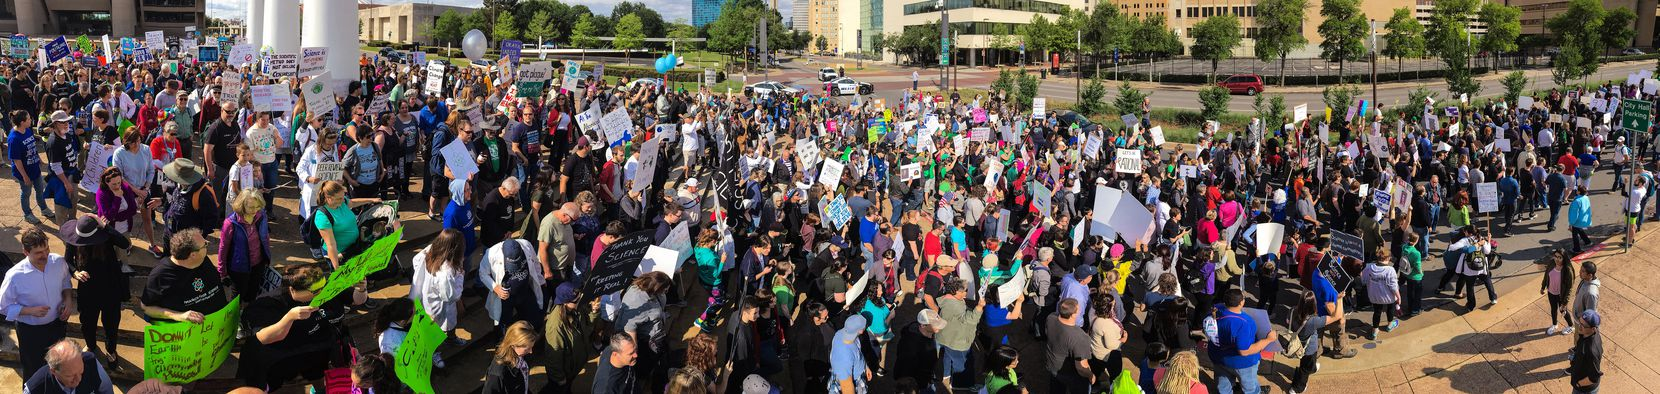 As seen in this panoramic image, the March For Science rally kicked off at Dallas City Hall as supports marched onto Young St., headed to Fair Park's Earth Day celebration, Saturday, April 22, 2017. (Tom Fox/The Dallas Morning News)